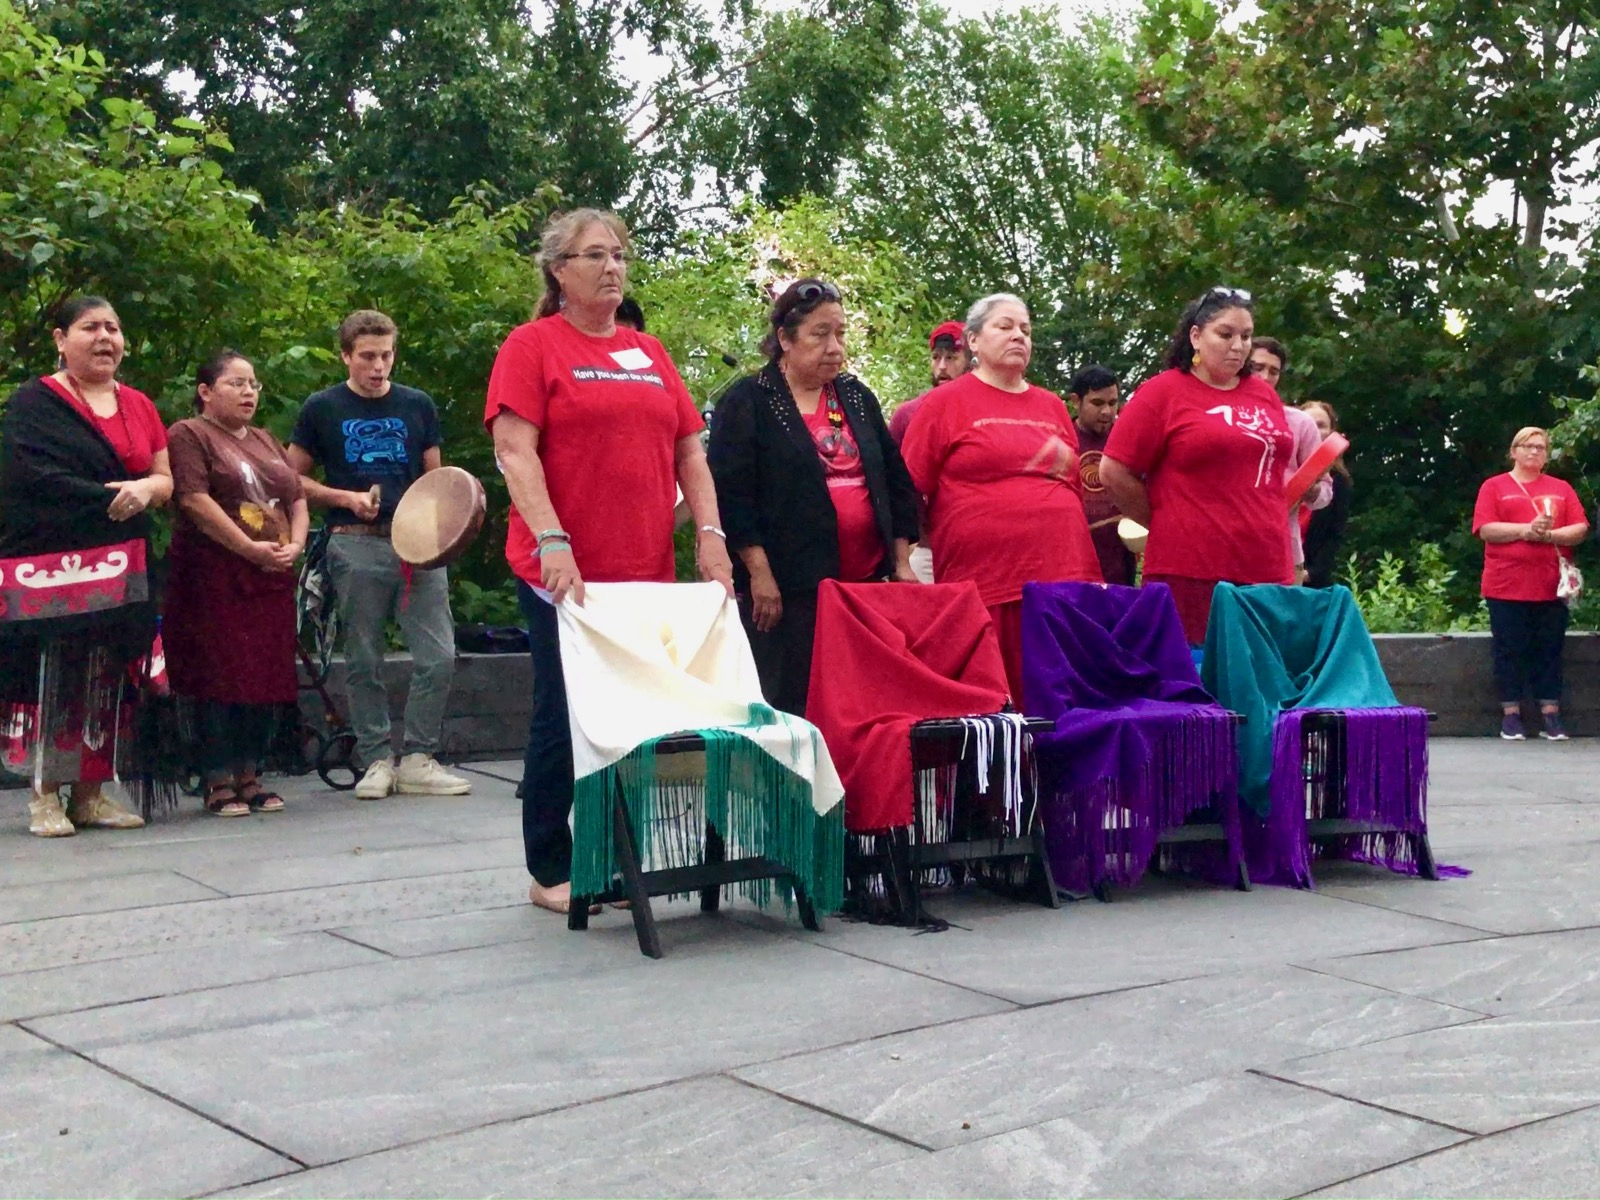 'Shameful': Congress fails to take action on missing and murdered Indigenous women